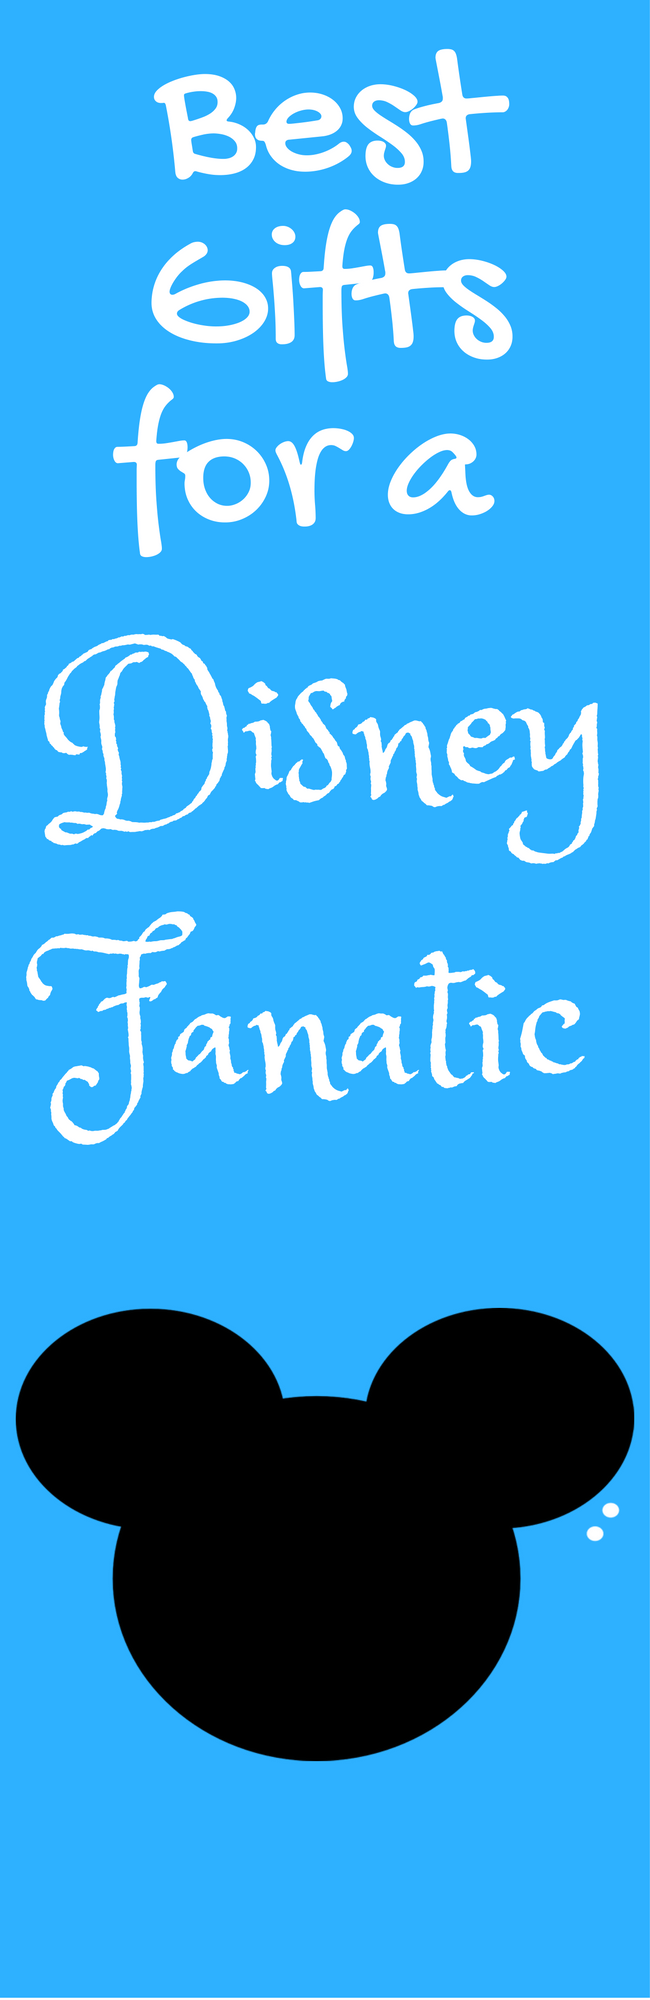 The best gifts for a Disney fanatic!